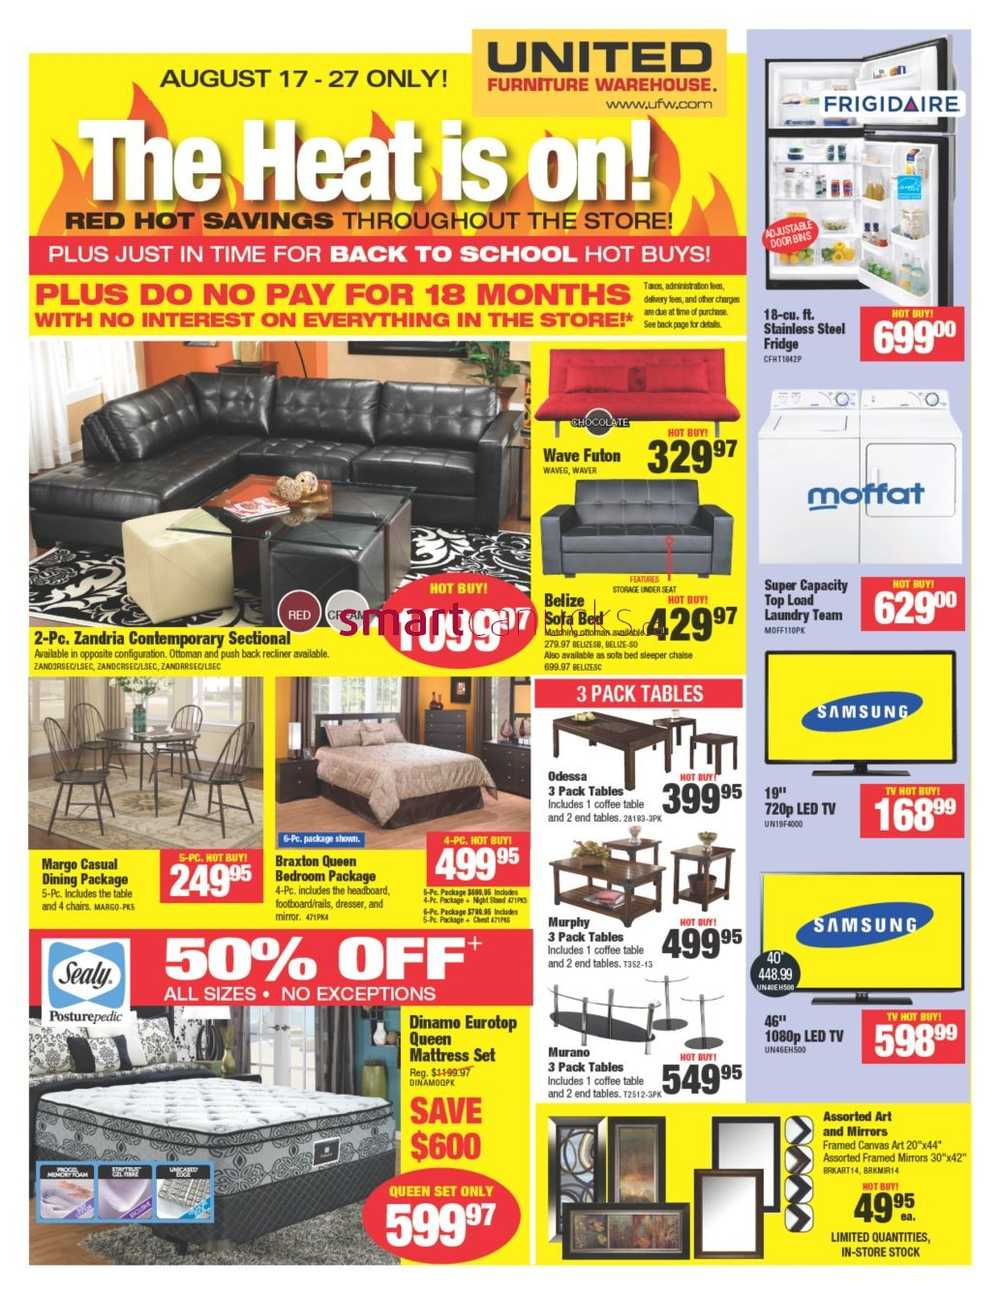 United Furniture Warehouse Flyer August 17 To 27